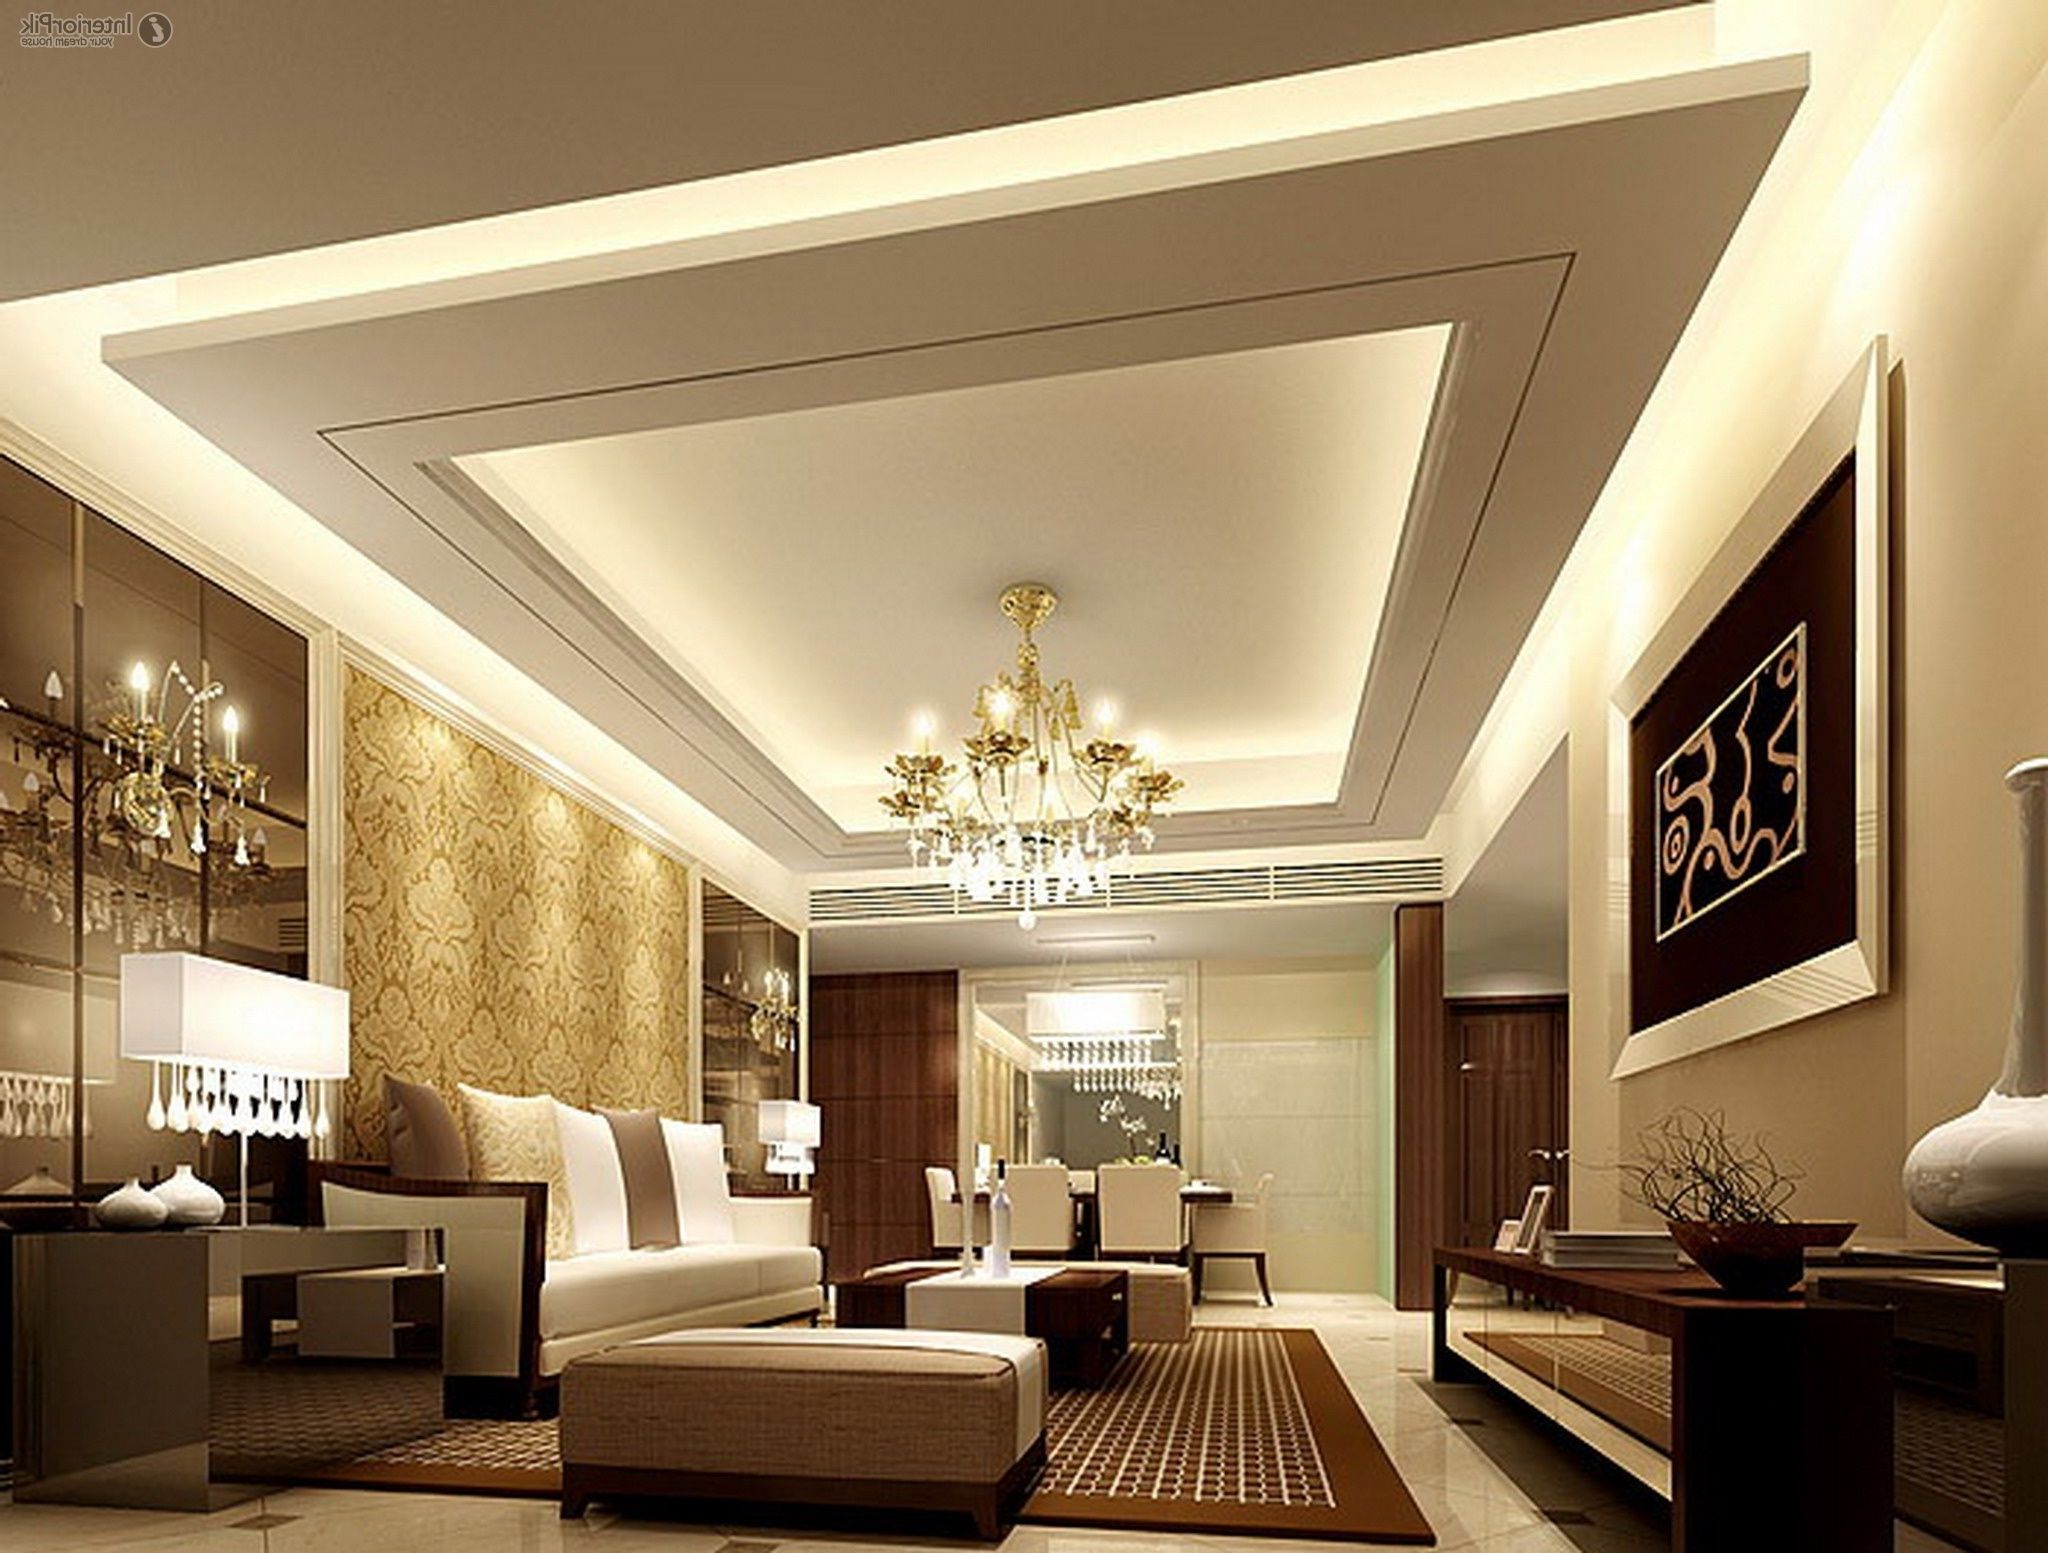 Gypsum Ceiling Design For Living Room Lighting Home